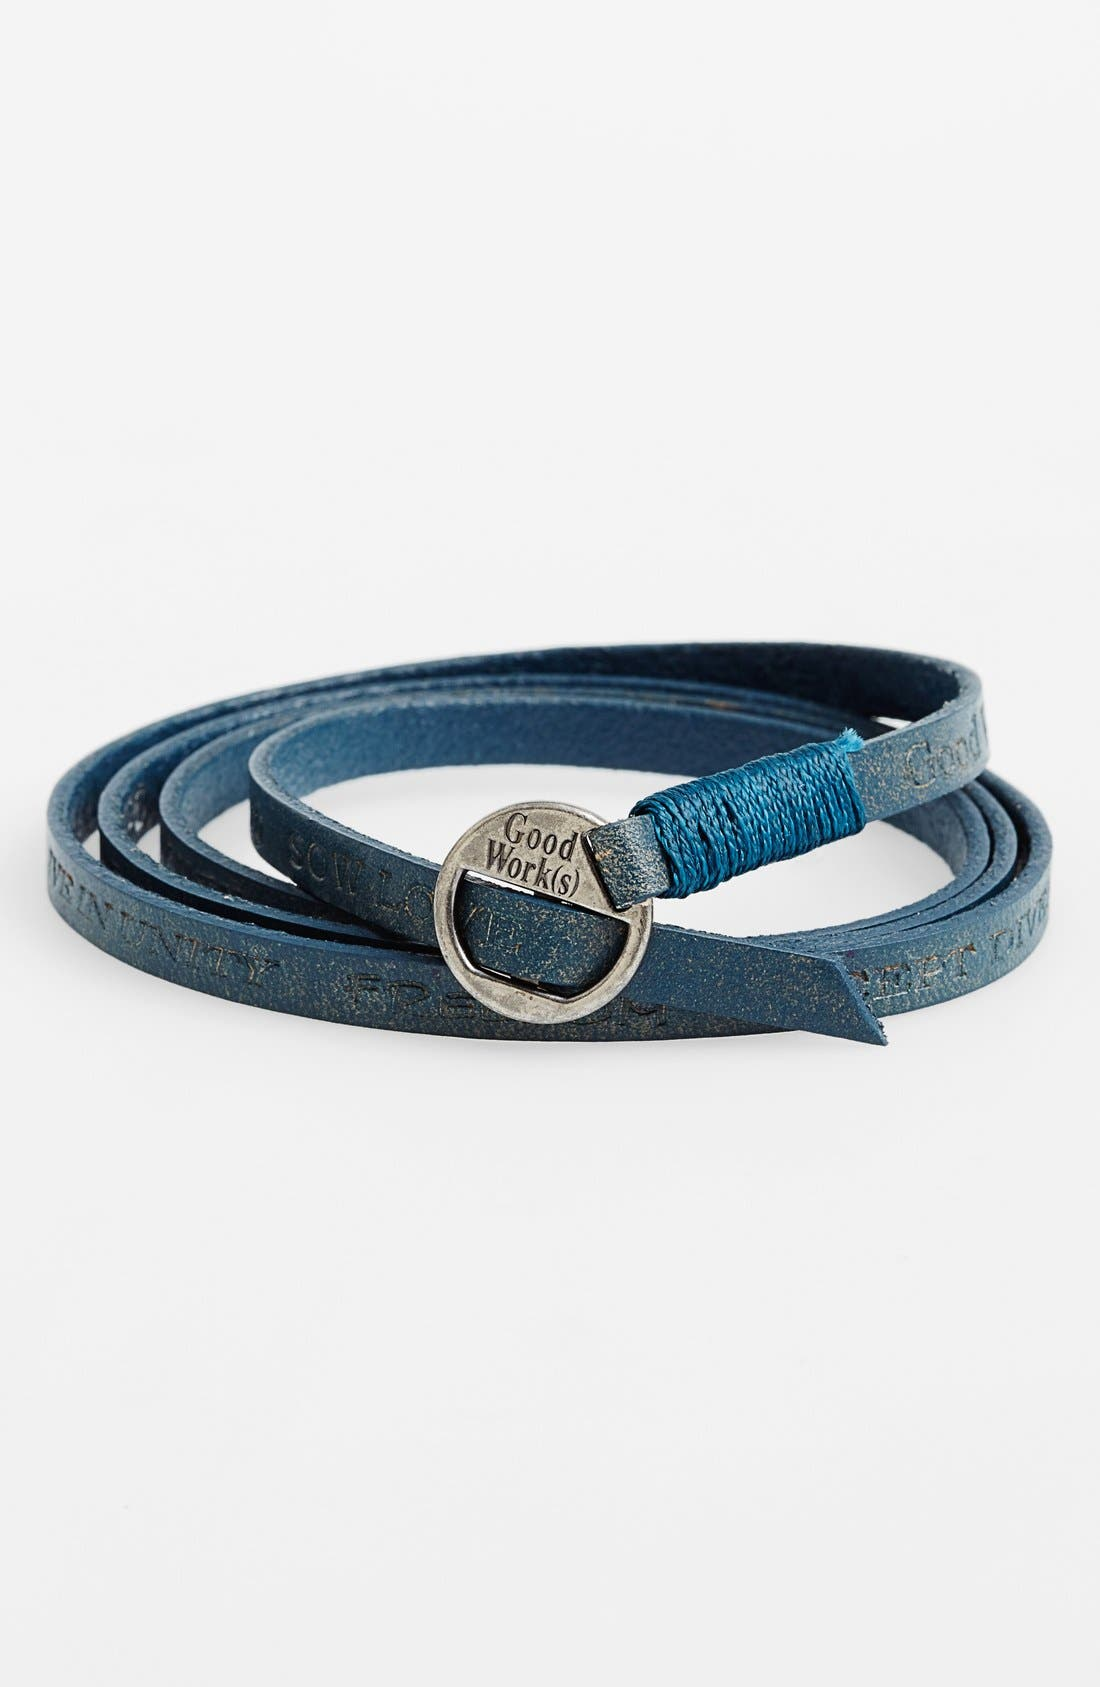 Alternate Image 1 Selected - Good Work(s) Make A Difference 'Courage' Leather Wrap Bracelet